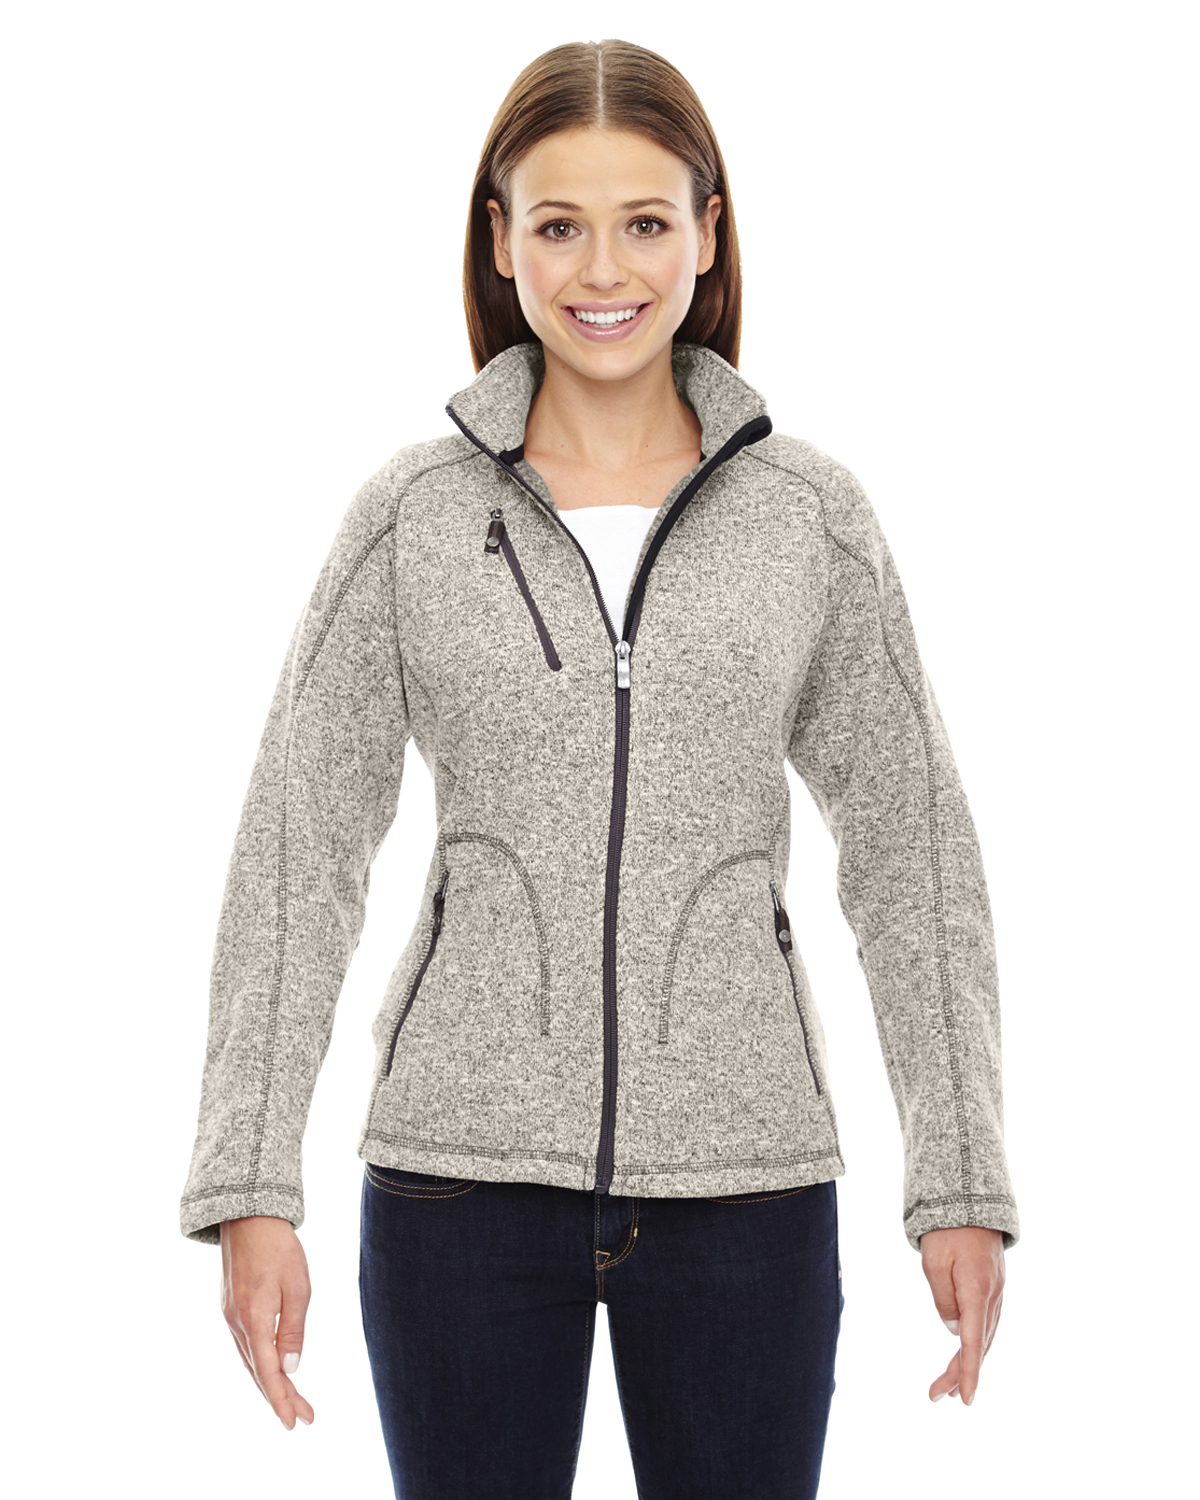 Ash City - 78669, North End Ladies' Peak Sweater Fleece Jacket, Embroidery, Screen Printing - Logo Masters International